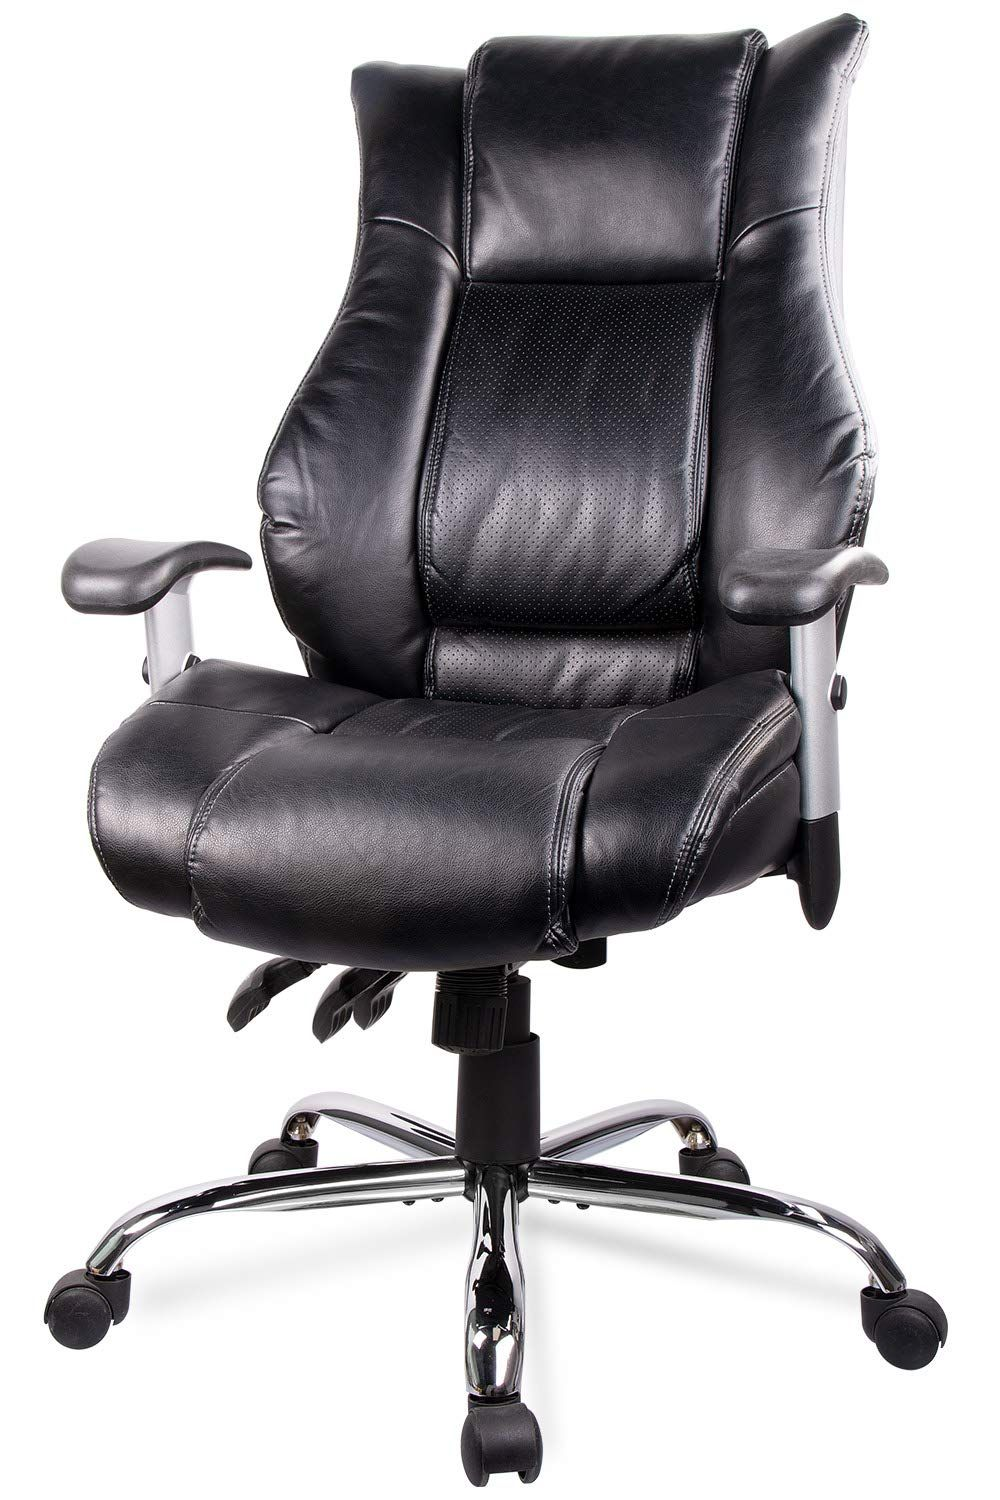 Smugdesk Executive Office Ergonomic Heavy Duty Computer Bonded Leather Adjustable Desk Chair Swivel Comfortable Rolling Black In 2020 Comfortable Computer Chair Adjustable Desk Comfortable Office Chair